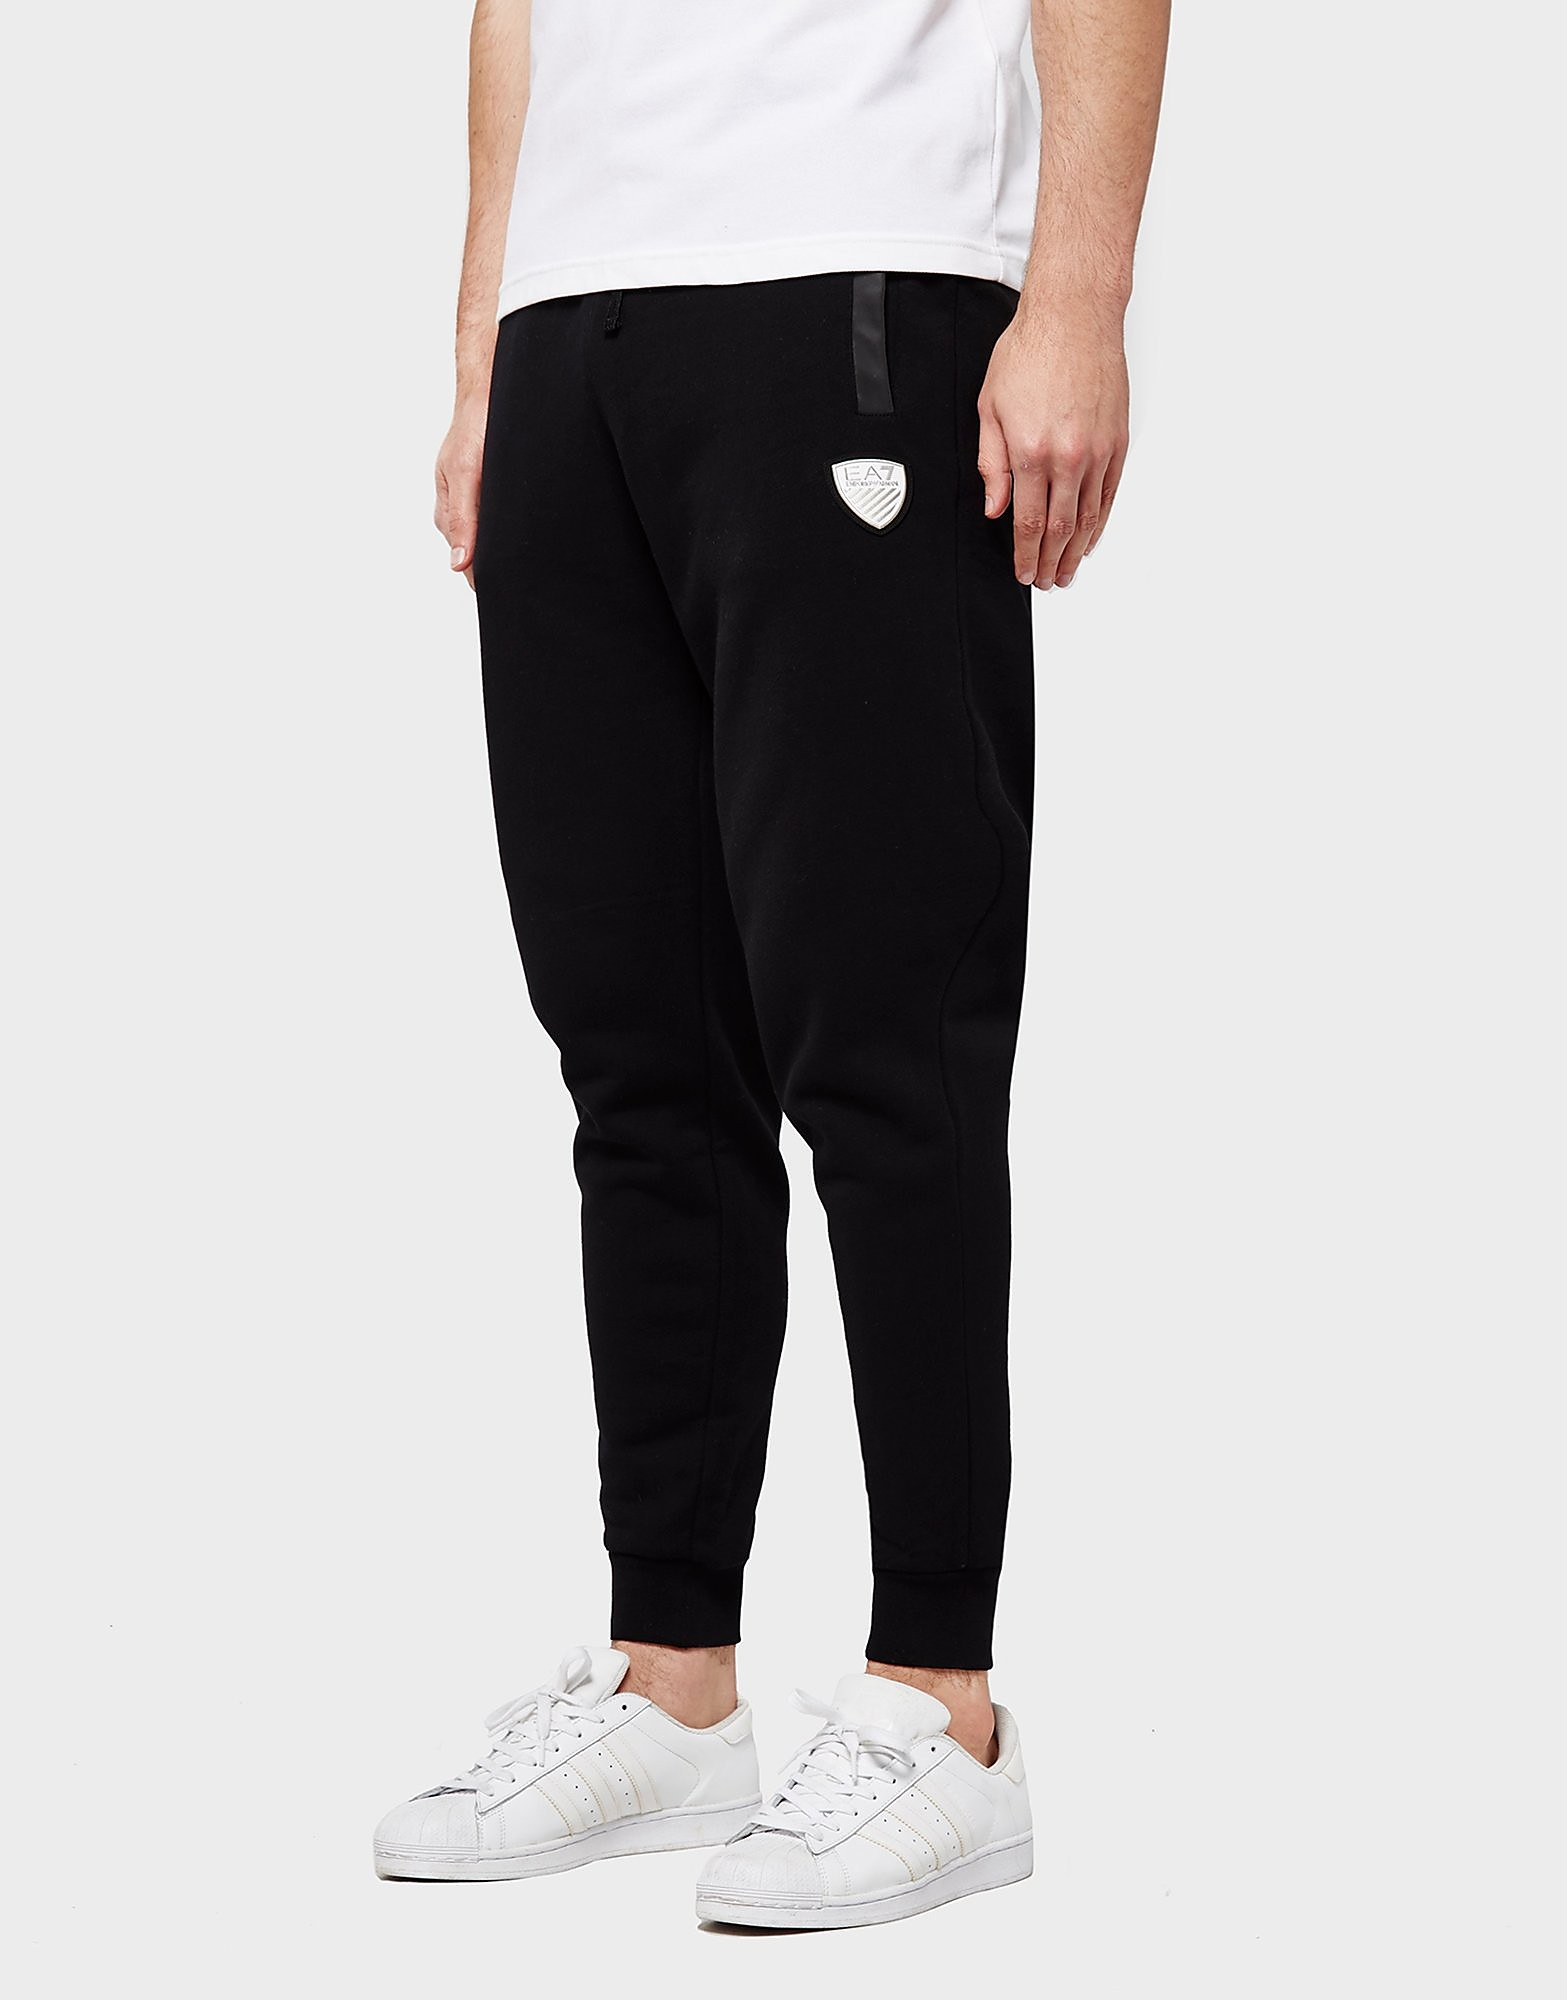 Emporio Armani EA7 259 Fleece Trackpants - Exclusive